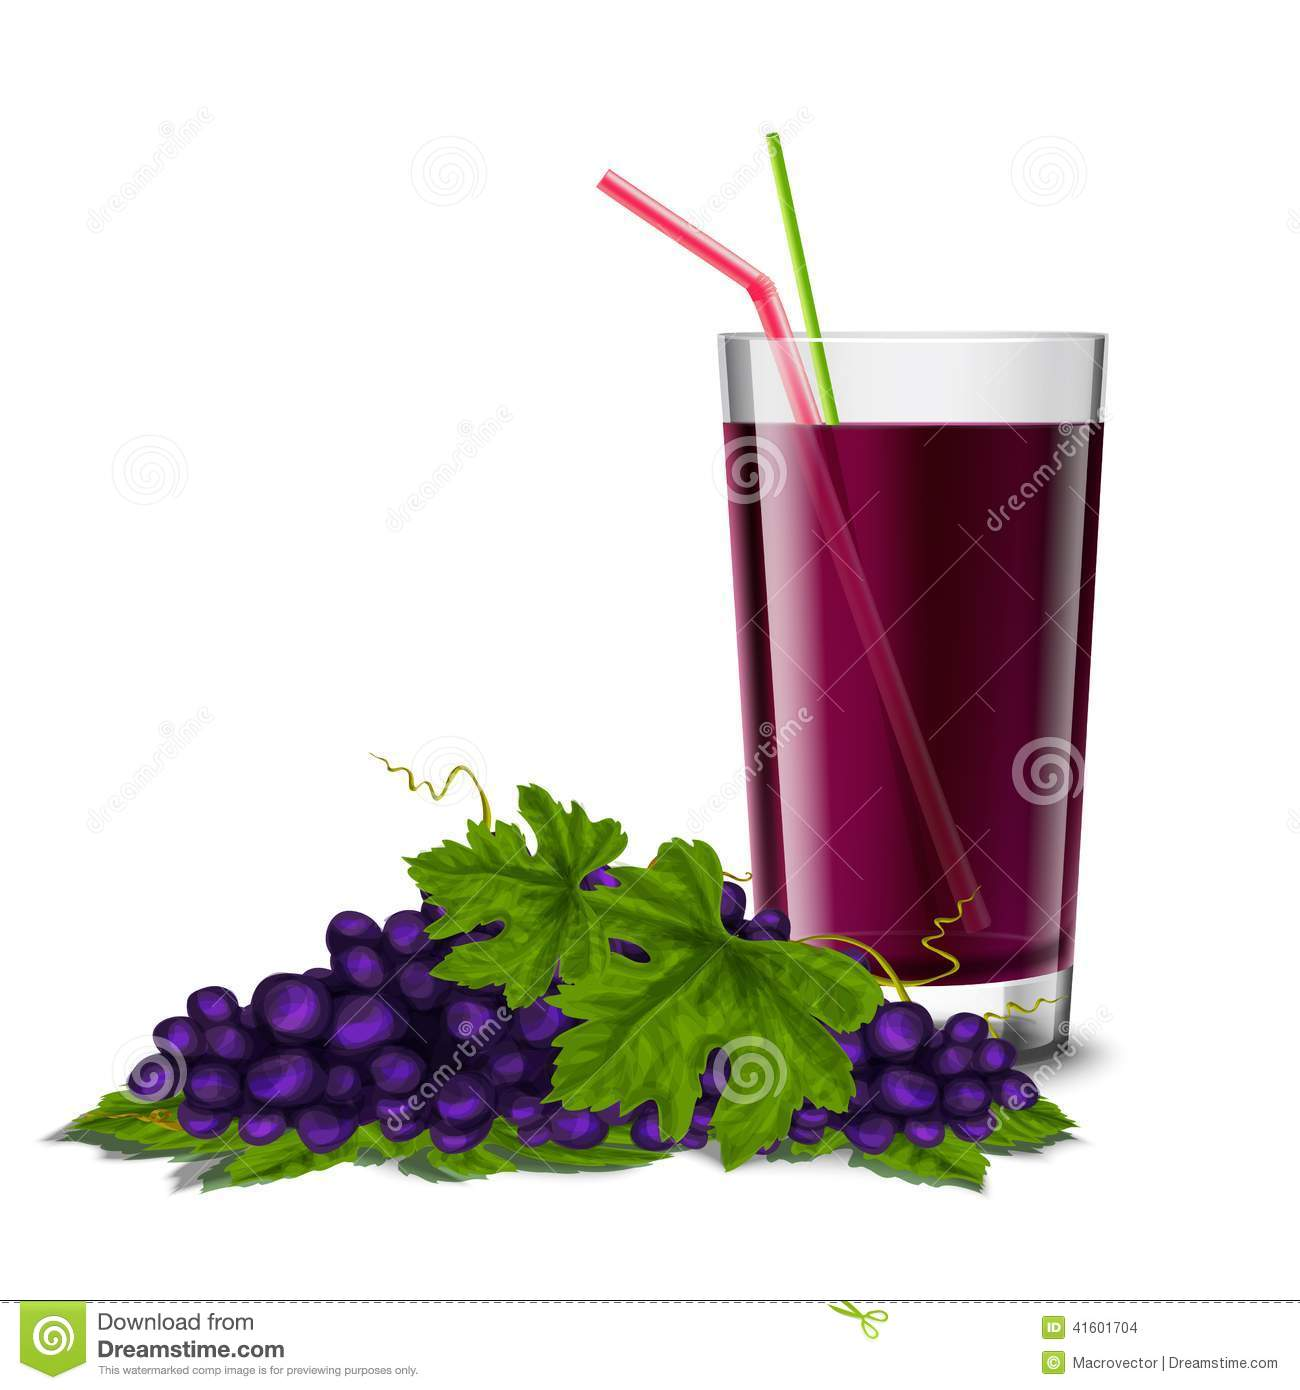 Grape Juice Glass Stock Vector - Image: 41601704